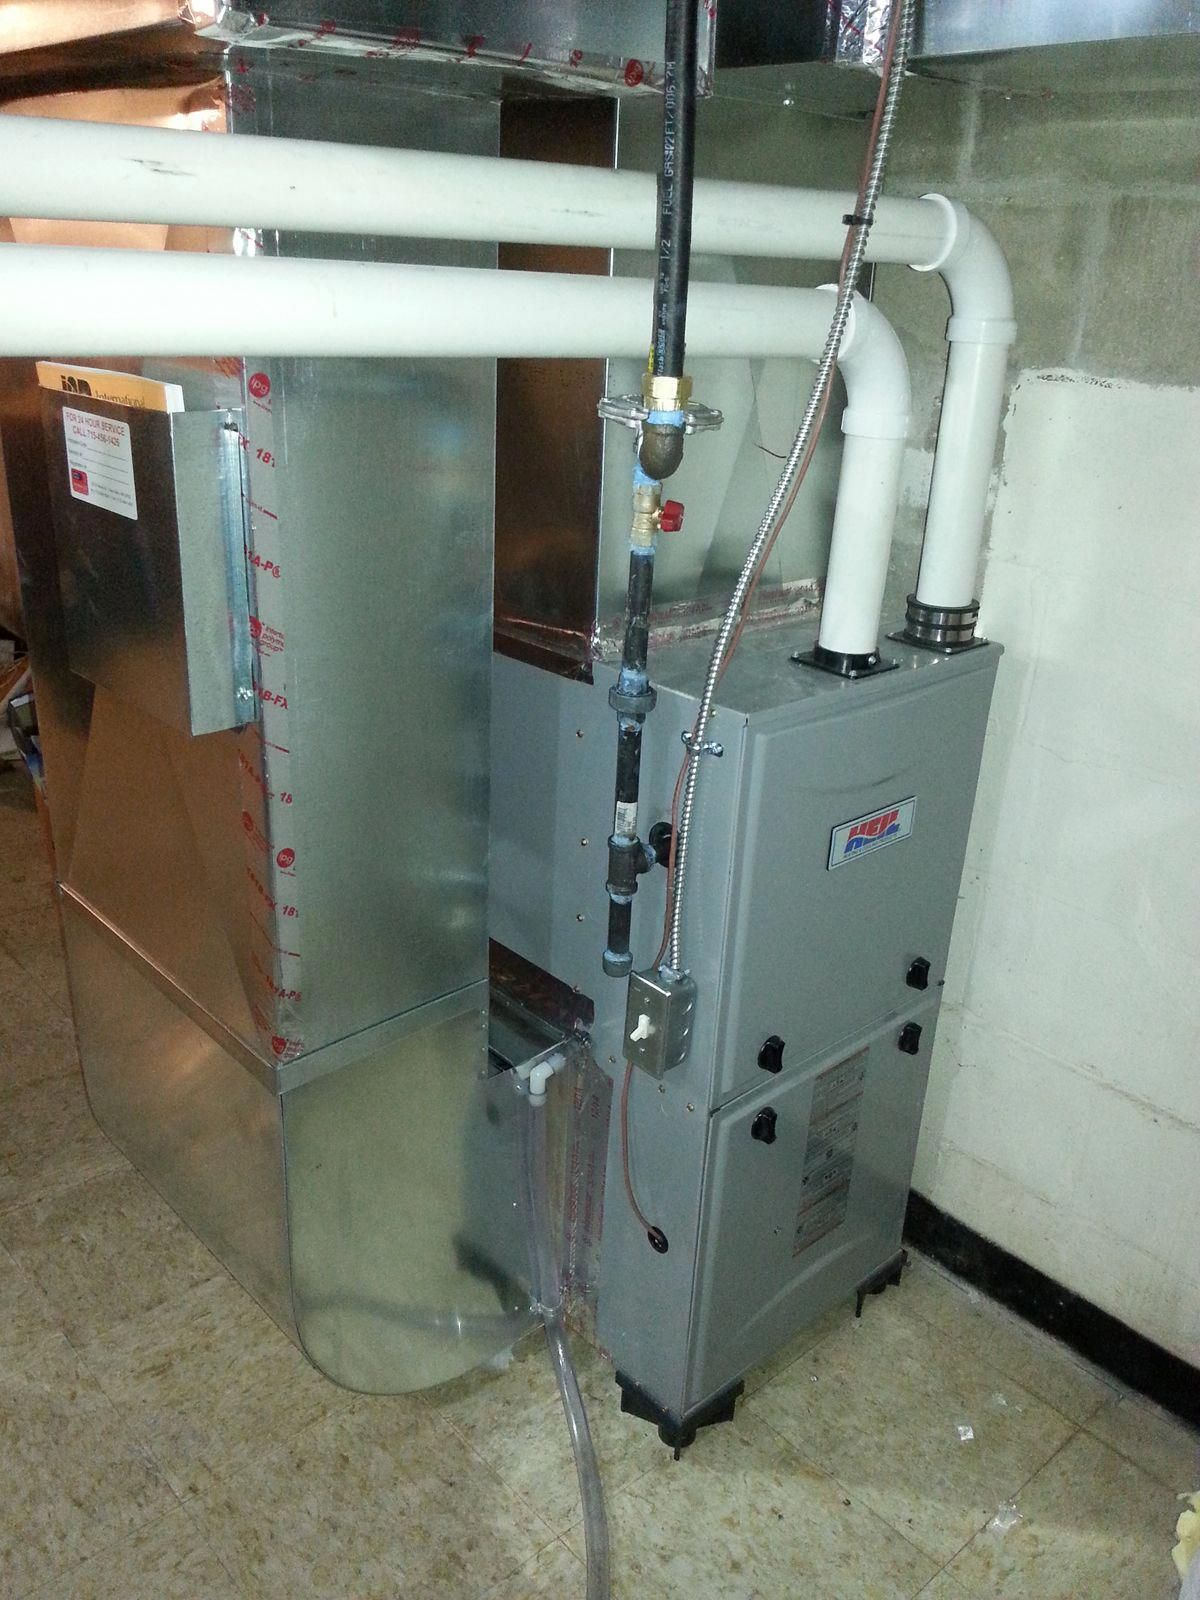 Residential Furnace Install The House That We Installed This Furnace In Had Electric Heat We Put A Gas Furnace A Furnace Installation Heating Repair Furnace